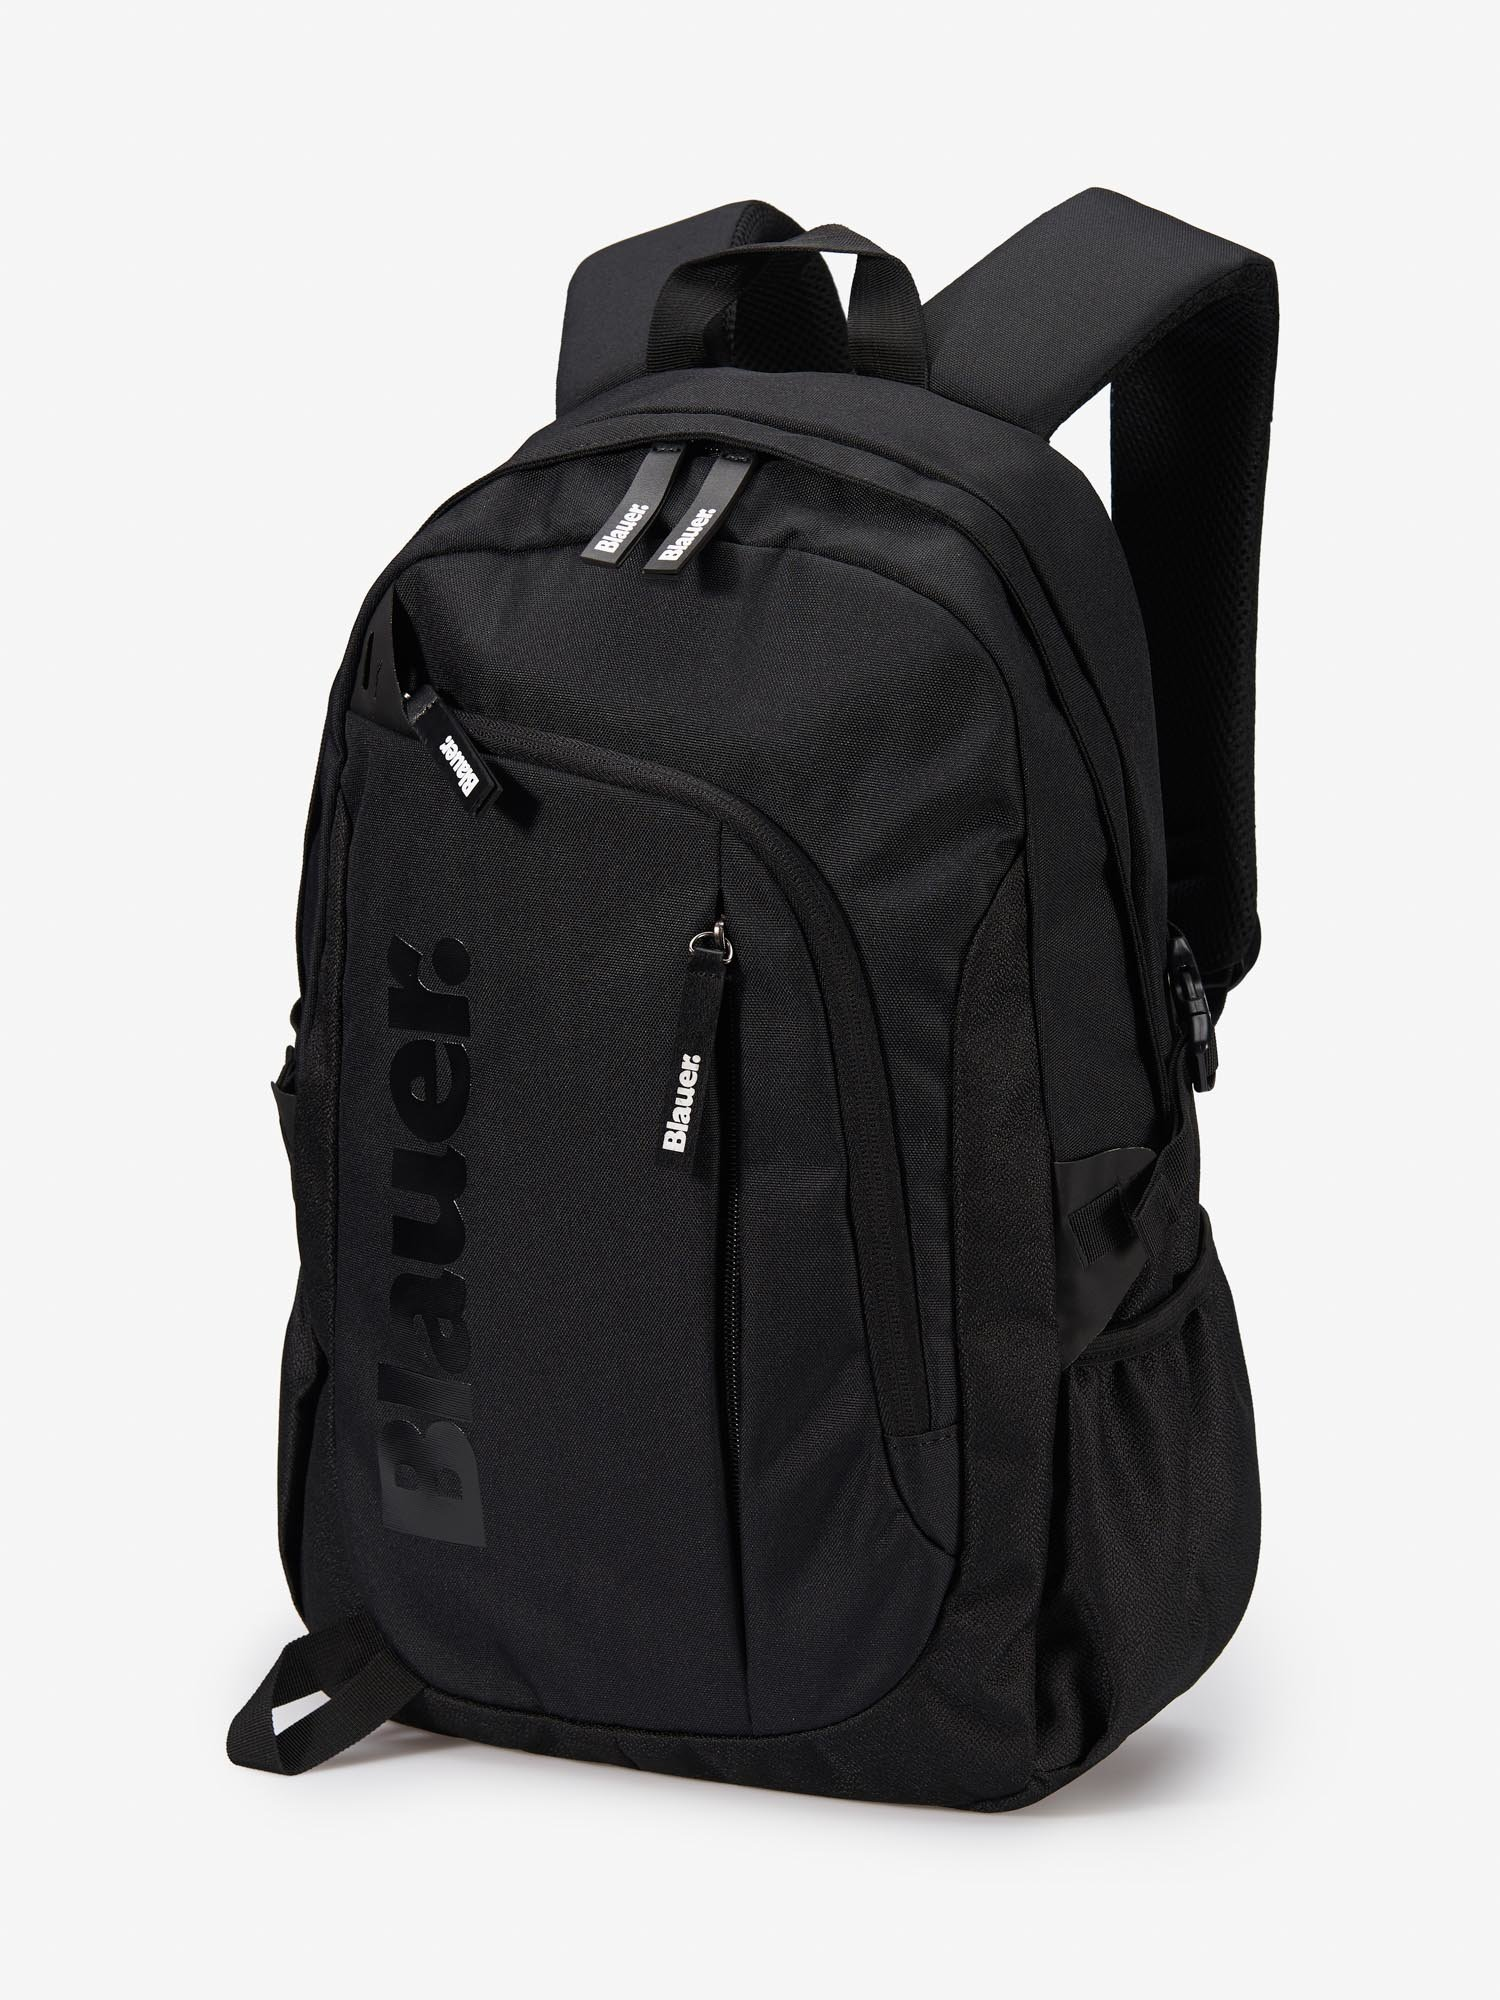 MULTI-POCKET BACKPACK - Blauer